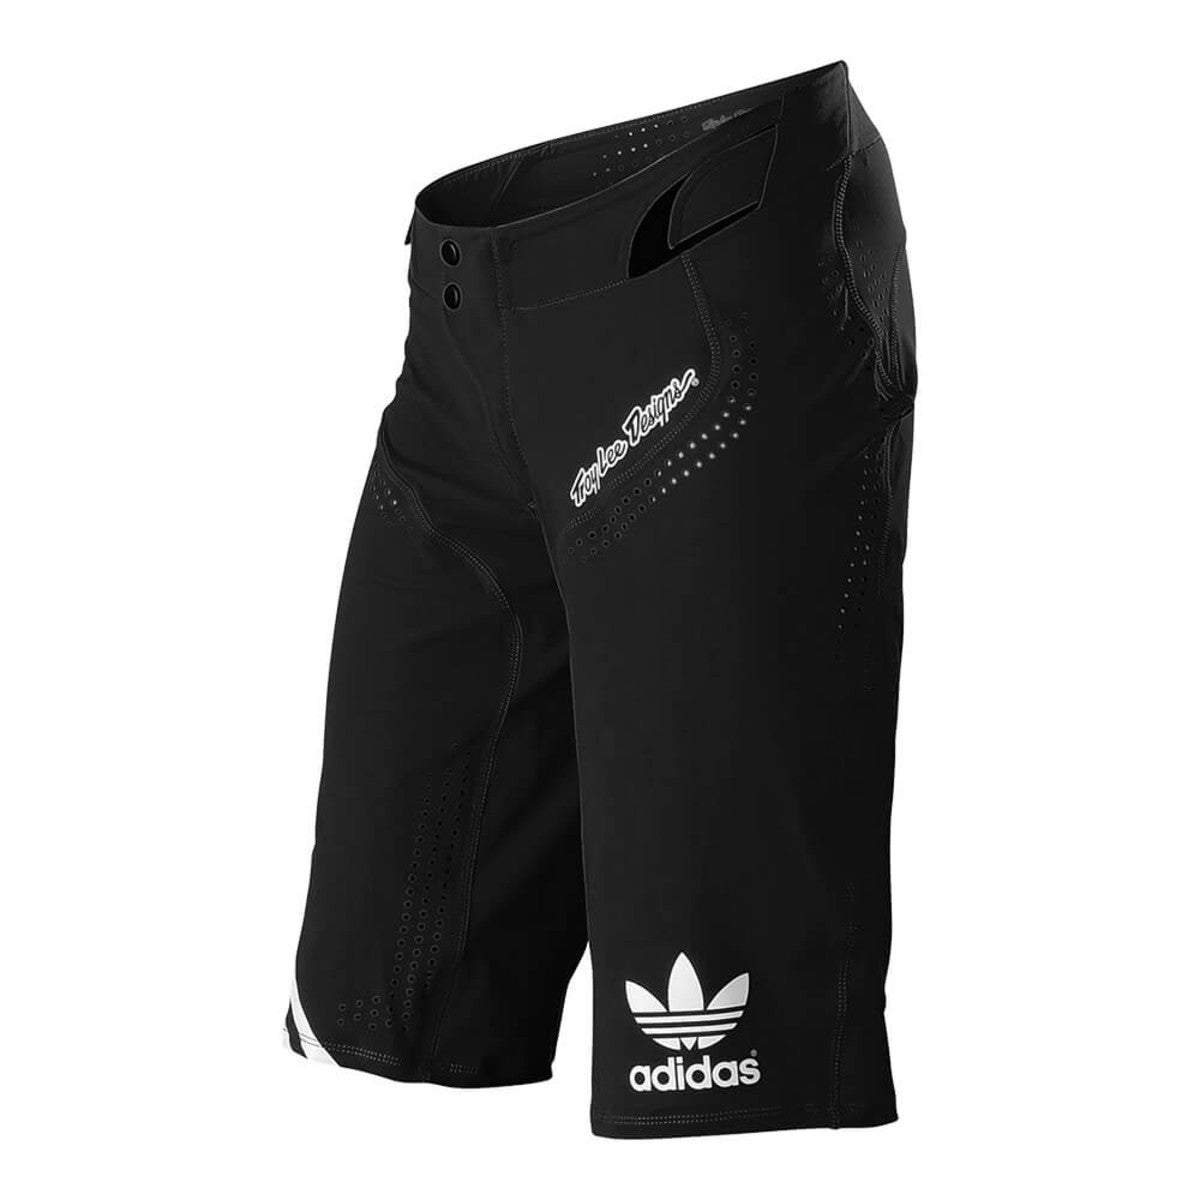 Troy Lee Designs Ultra Adidas MTB shorts - Black